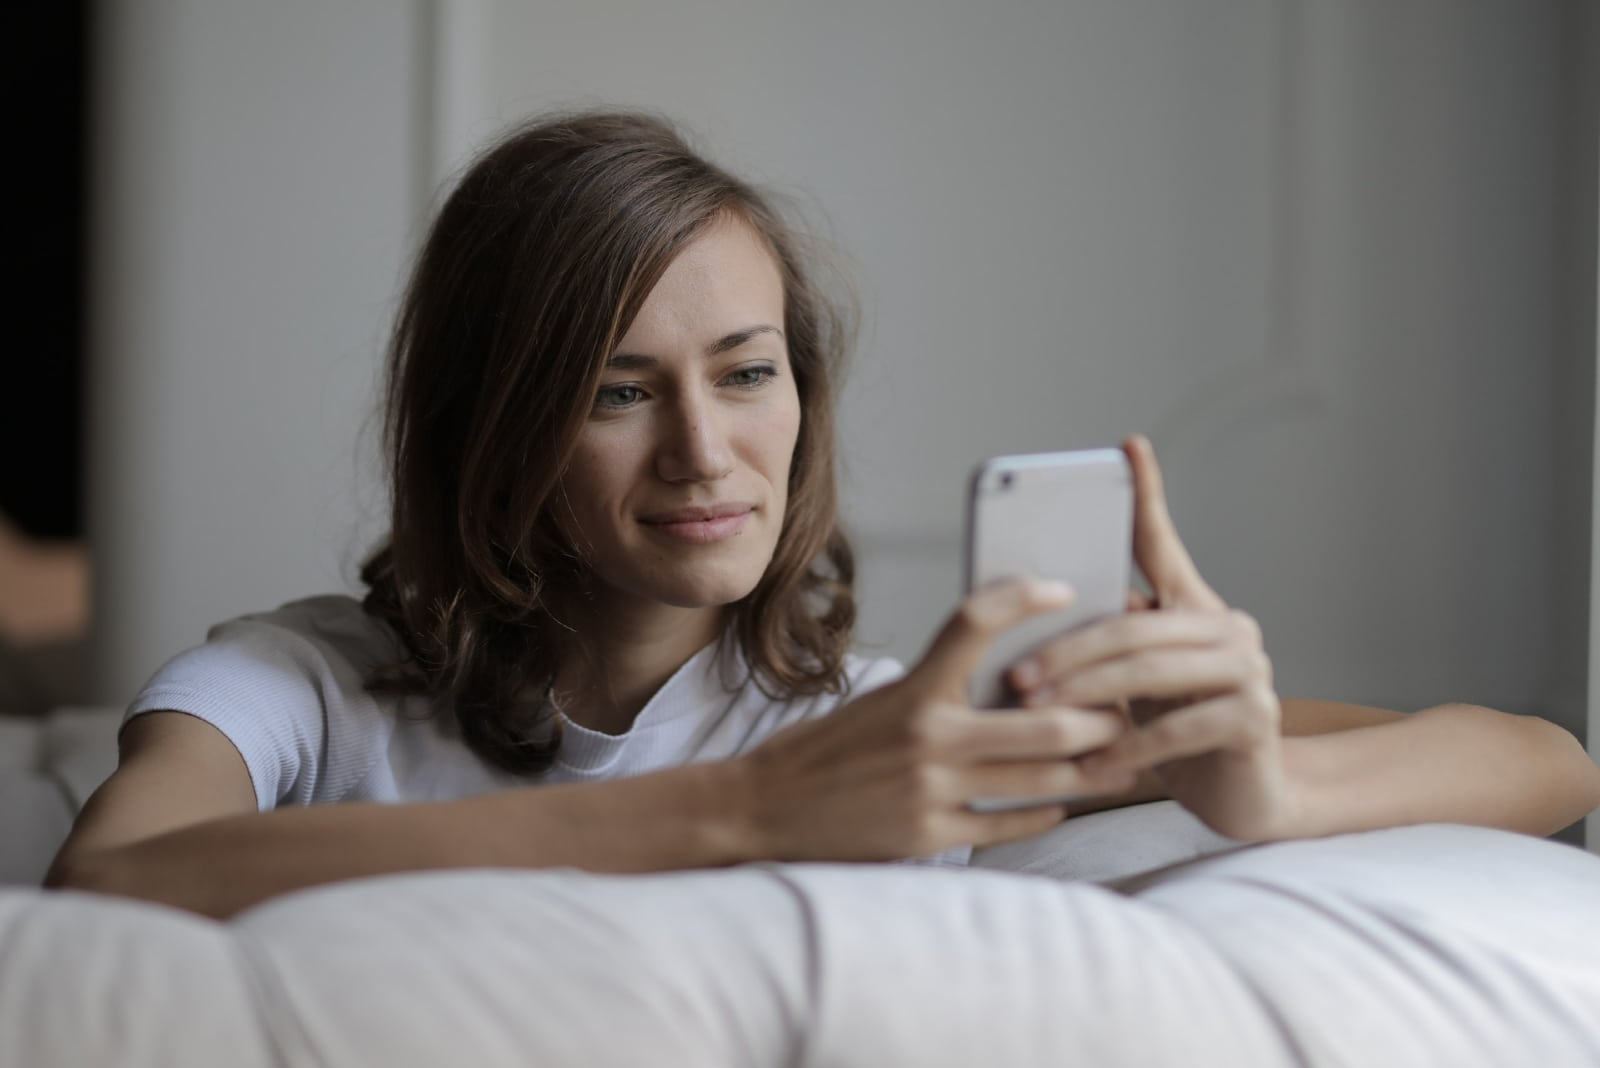 woman using smartphone while sitting on sofa